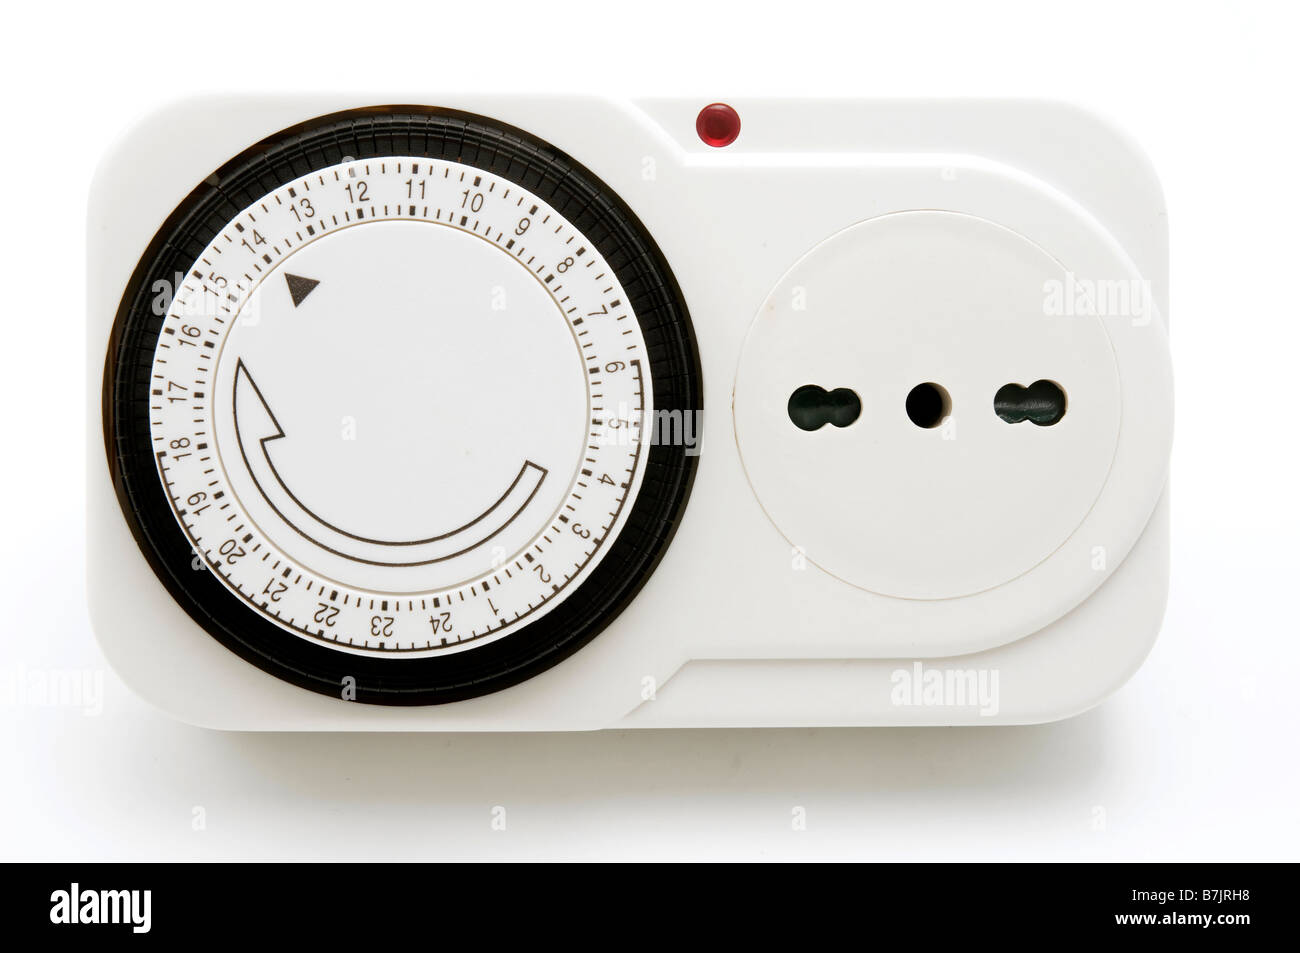 Electric Timer on a white background - Stock Image